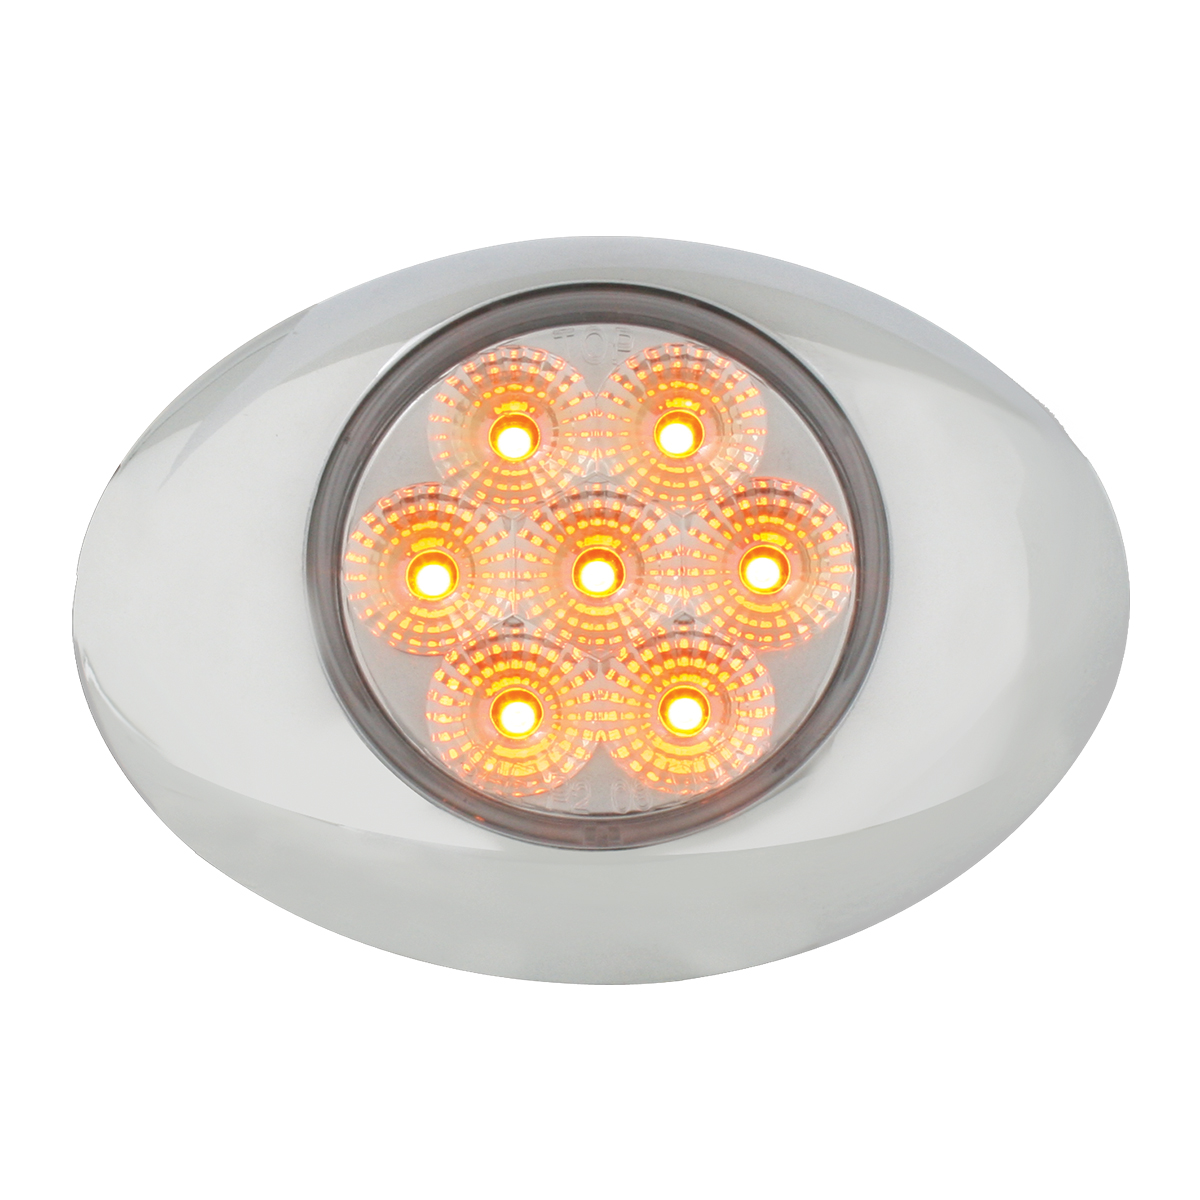 Small Spyder LED Light in Amber/Clear with Chrome Bezel